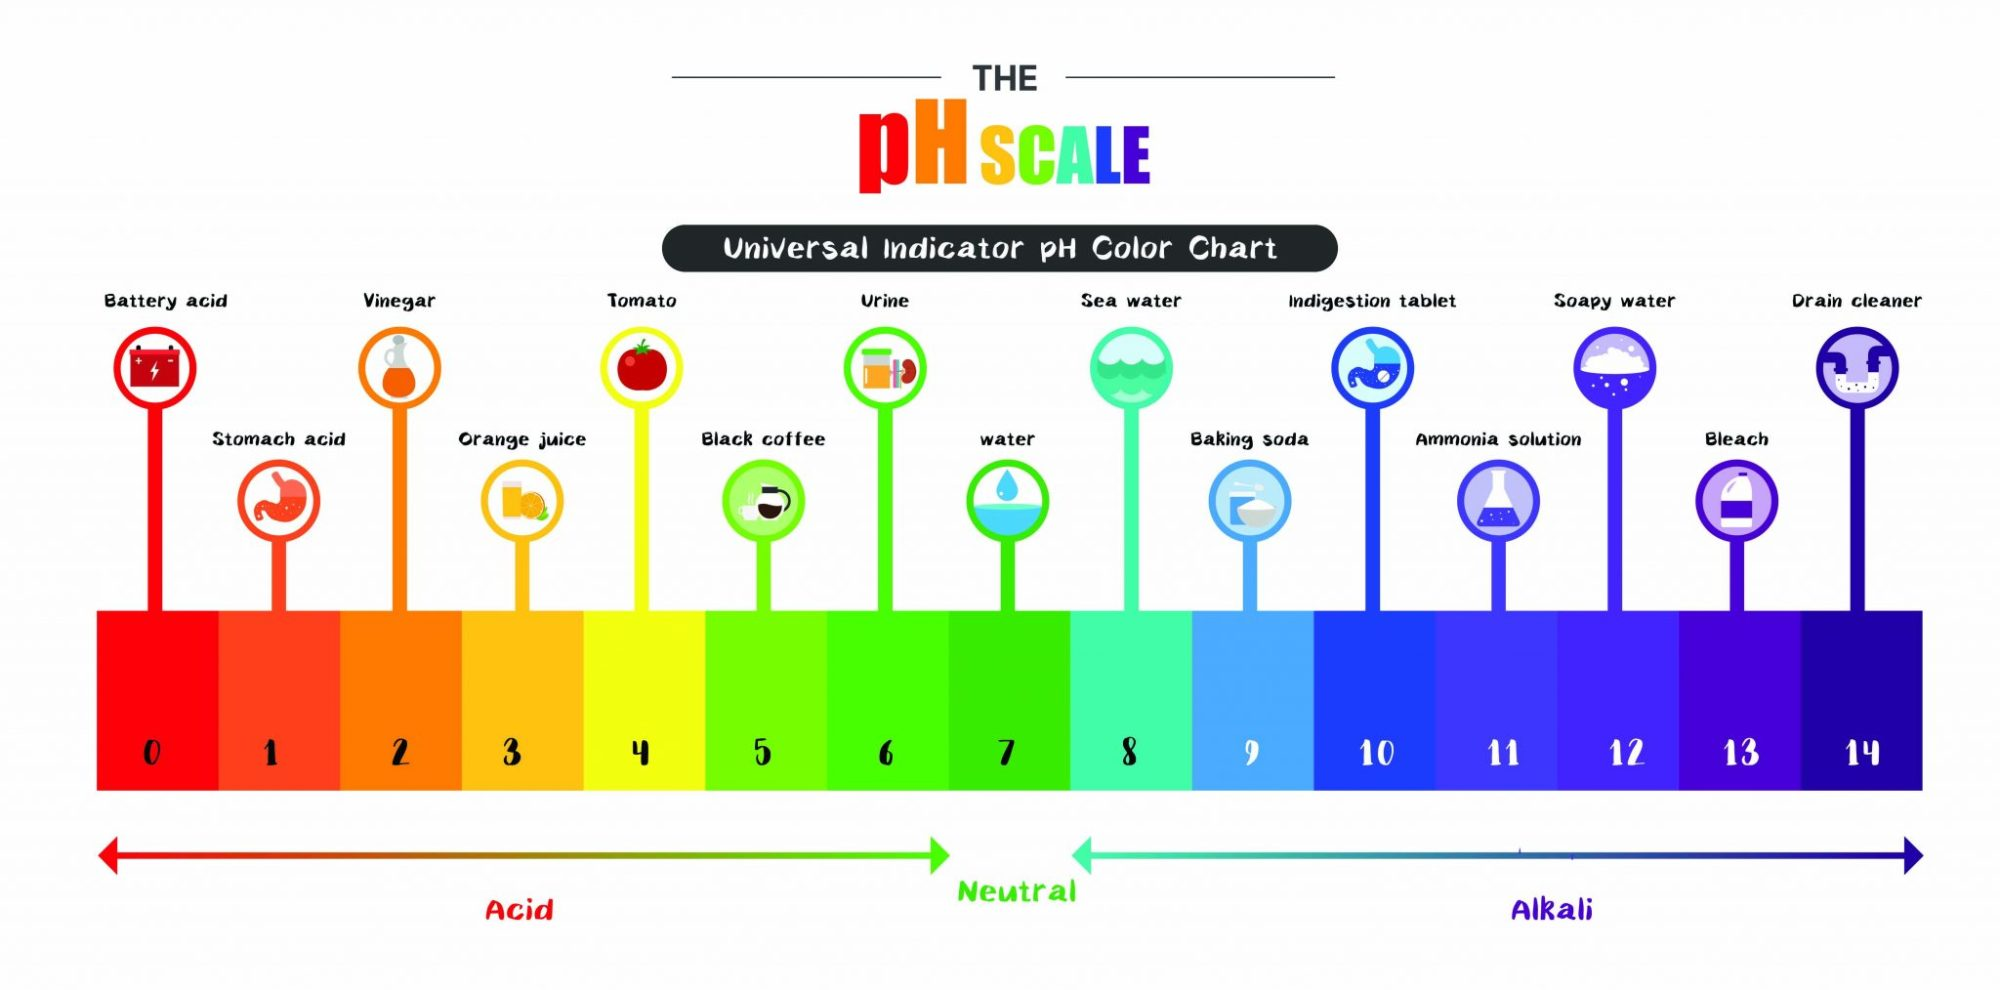 hight resolution of the ph scale universal indicator ph color chart diagram